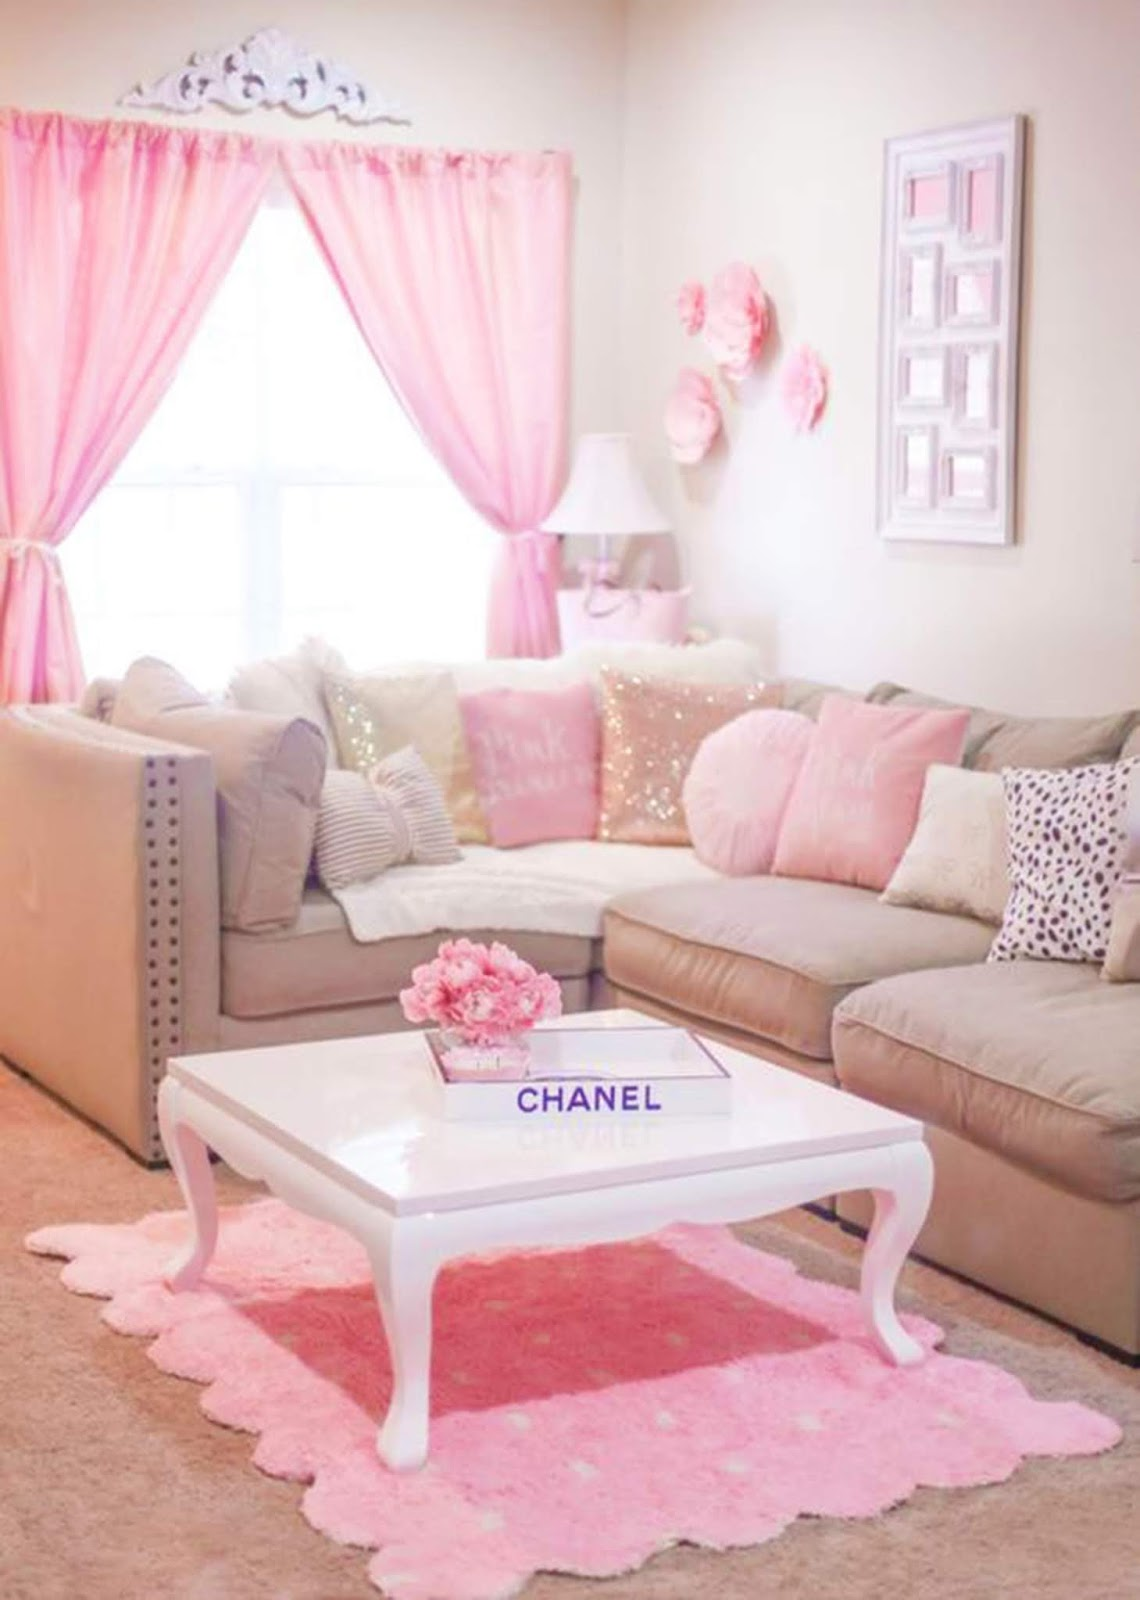 Rooms of Inspiration: Pretty Pink Living Room